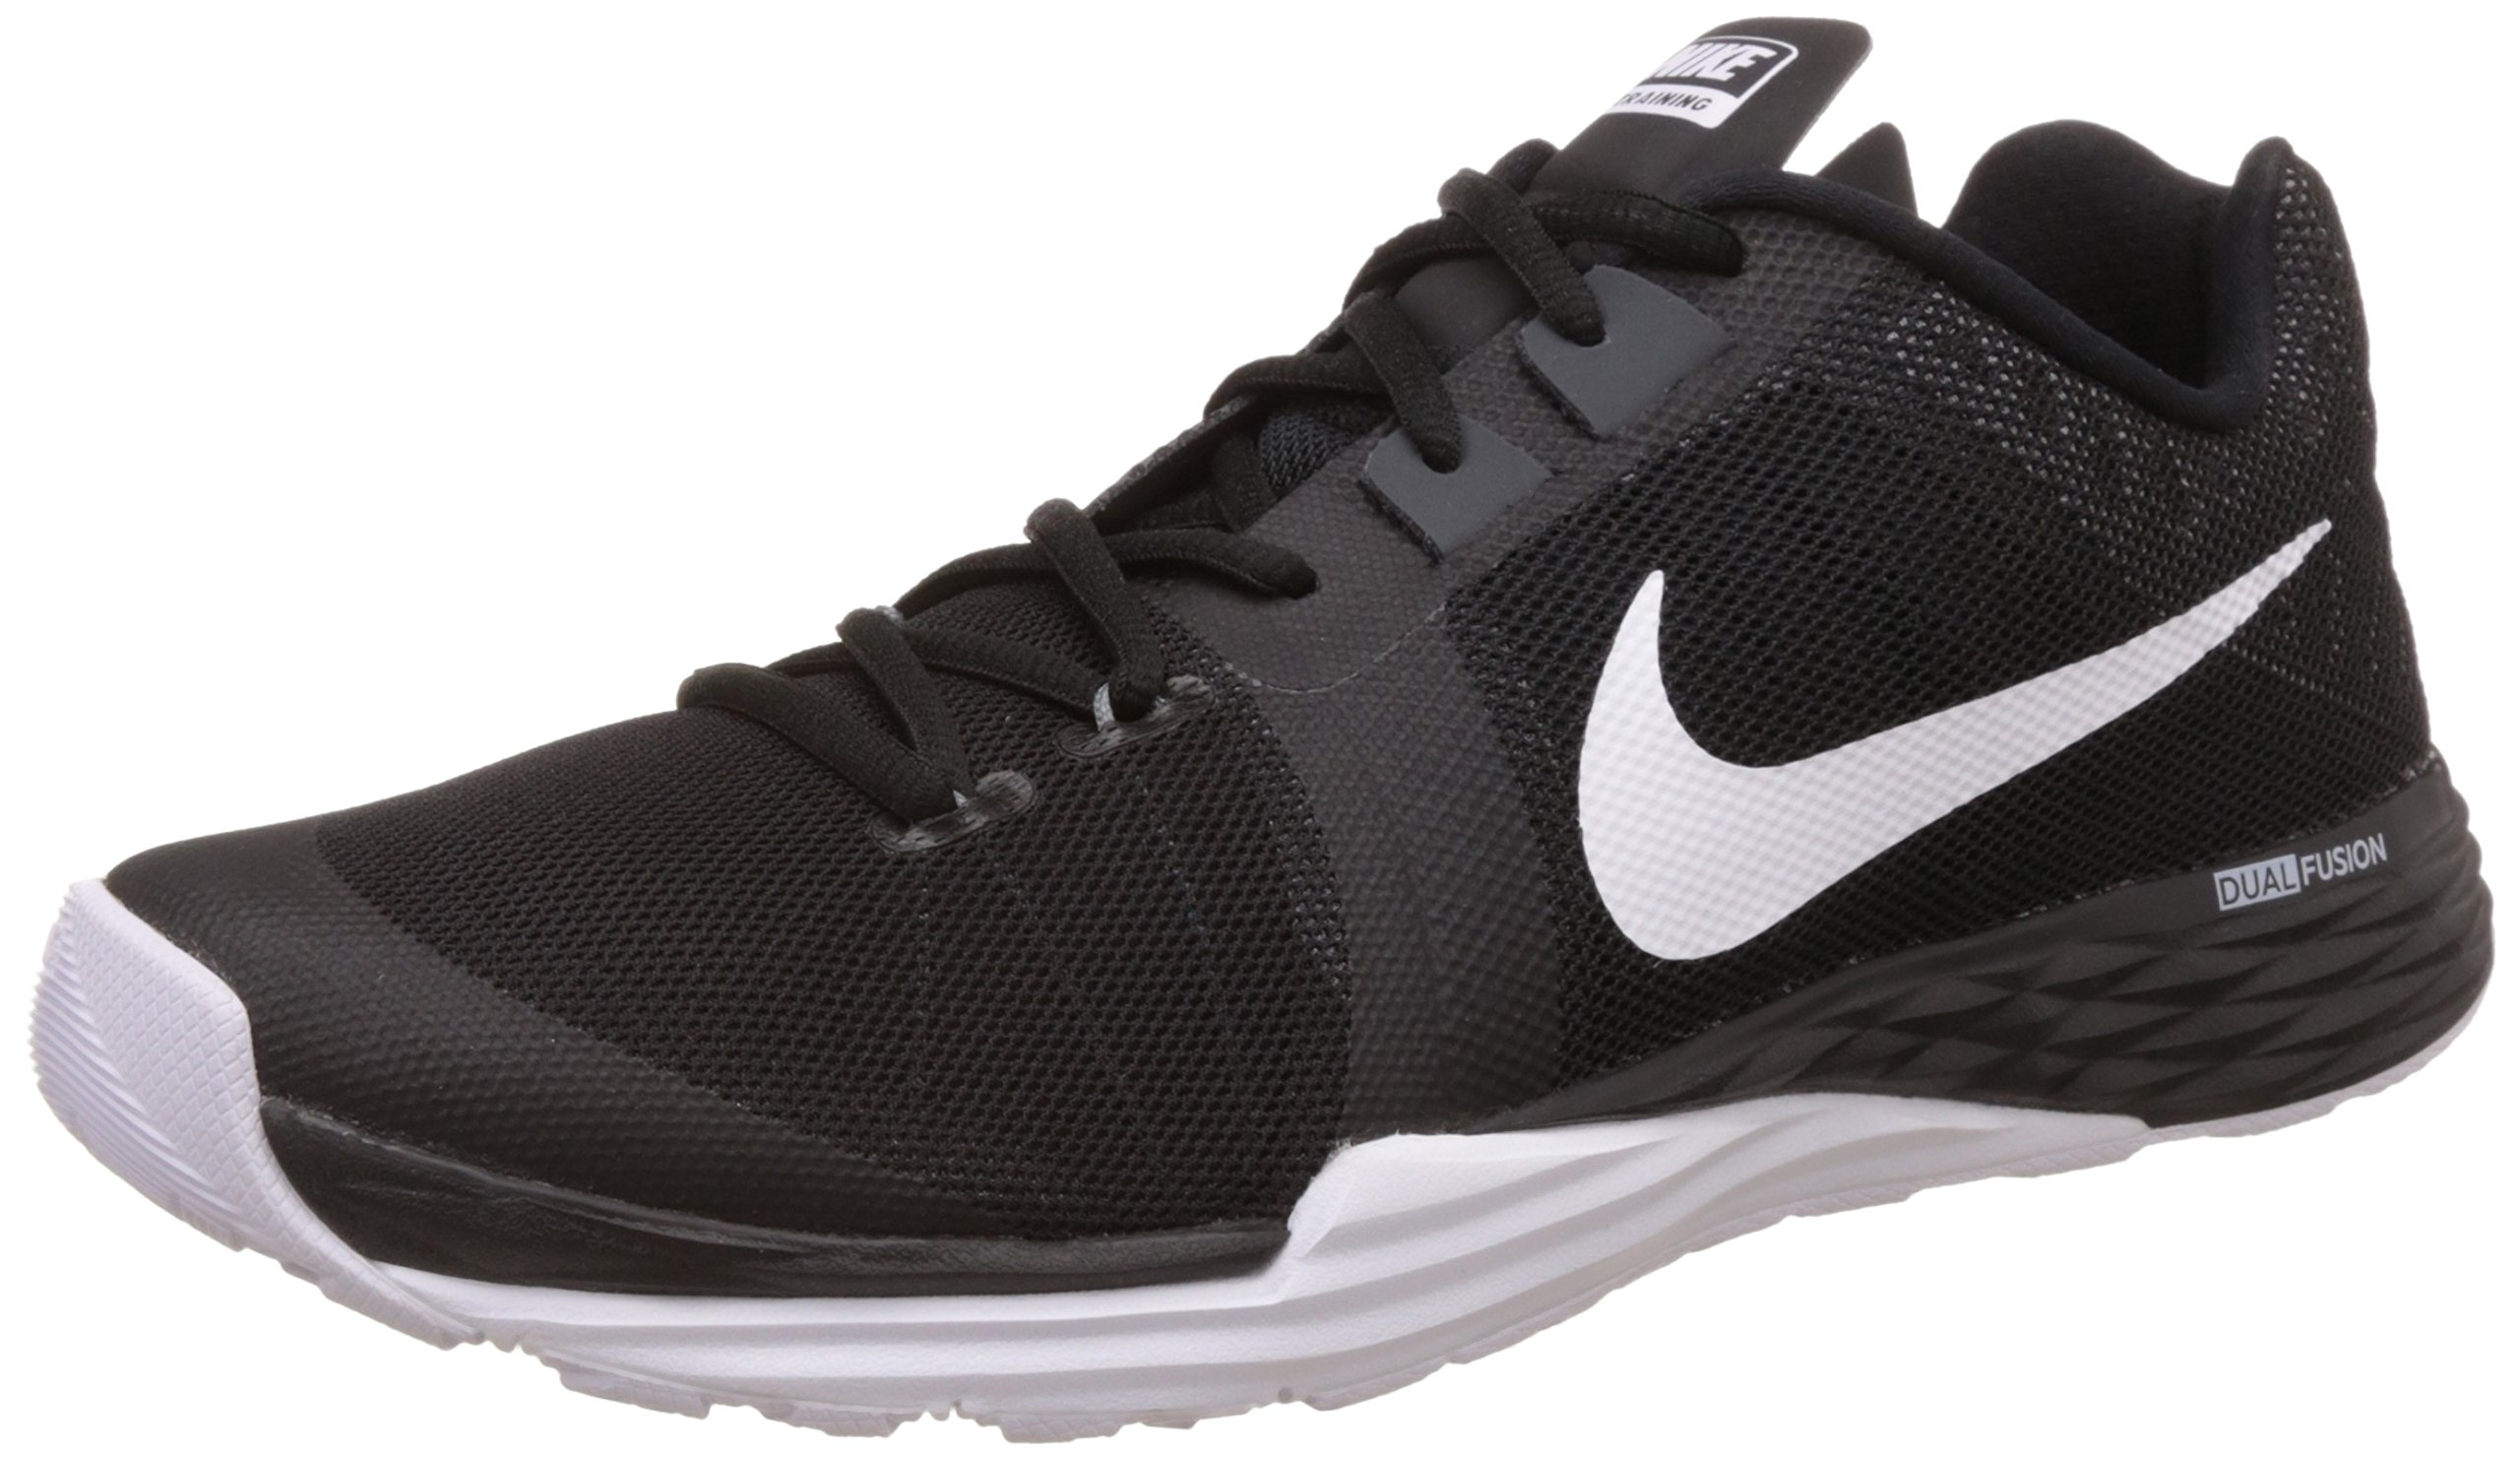 NIKE Men's Train Prime Iron DF Cross Training Shoe, Black ...